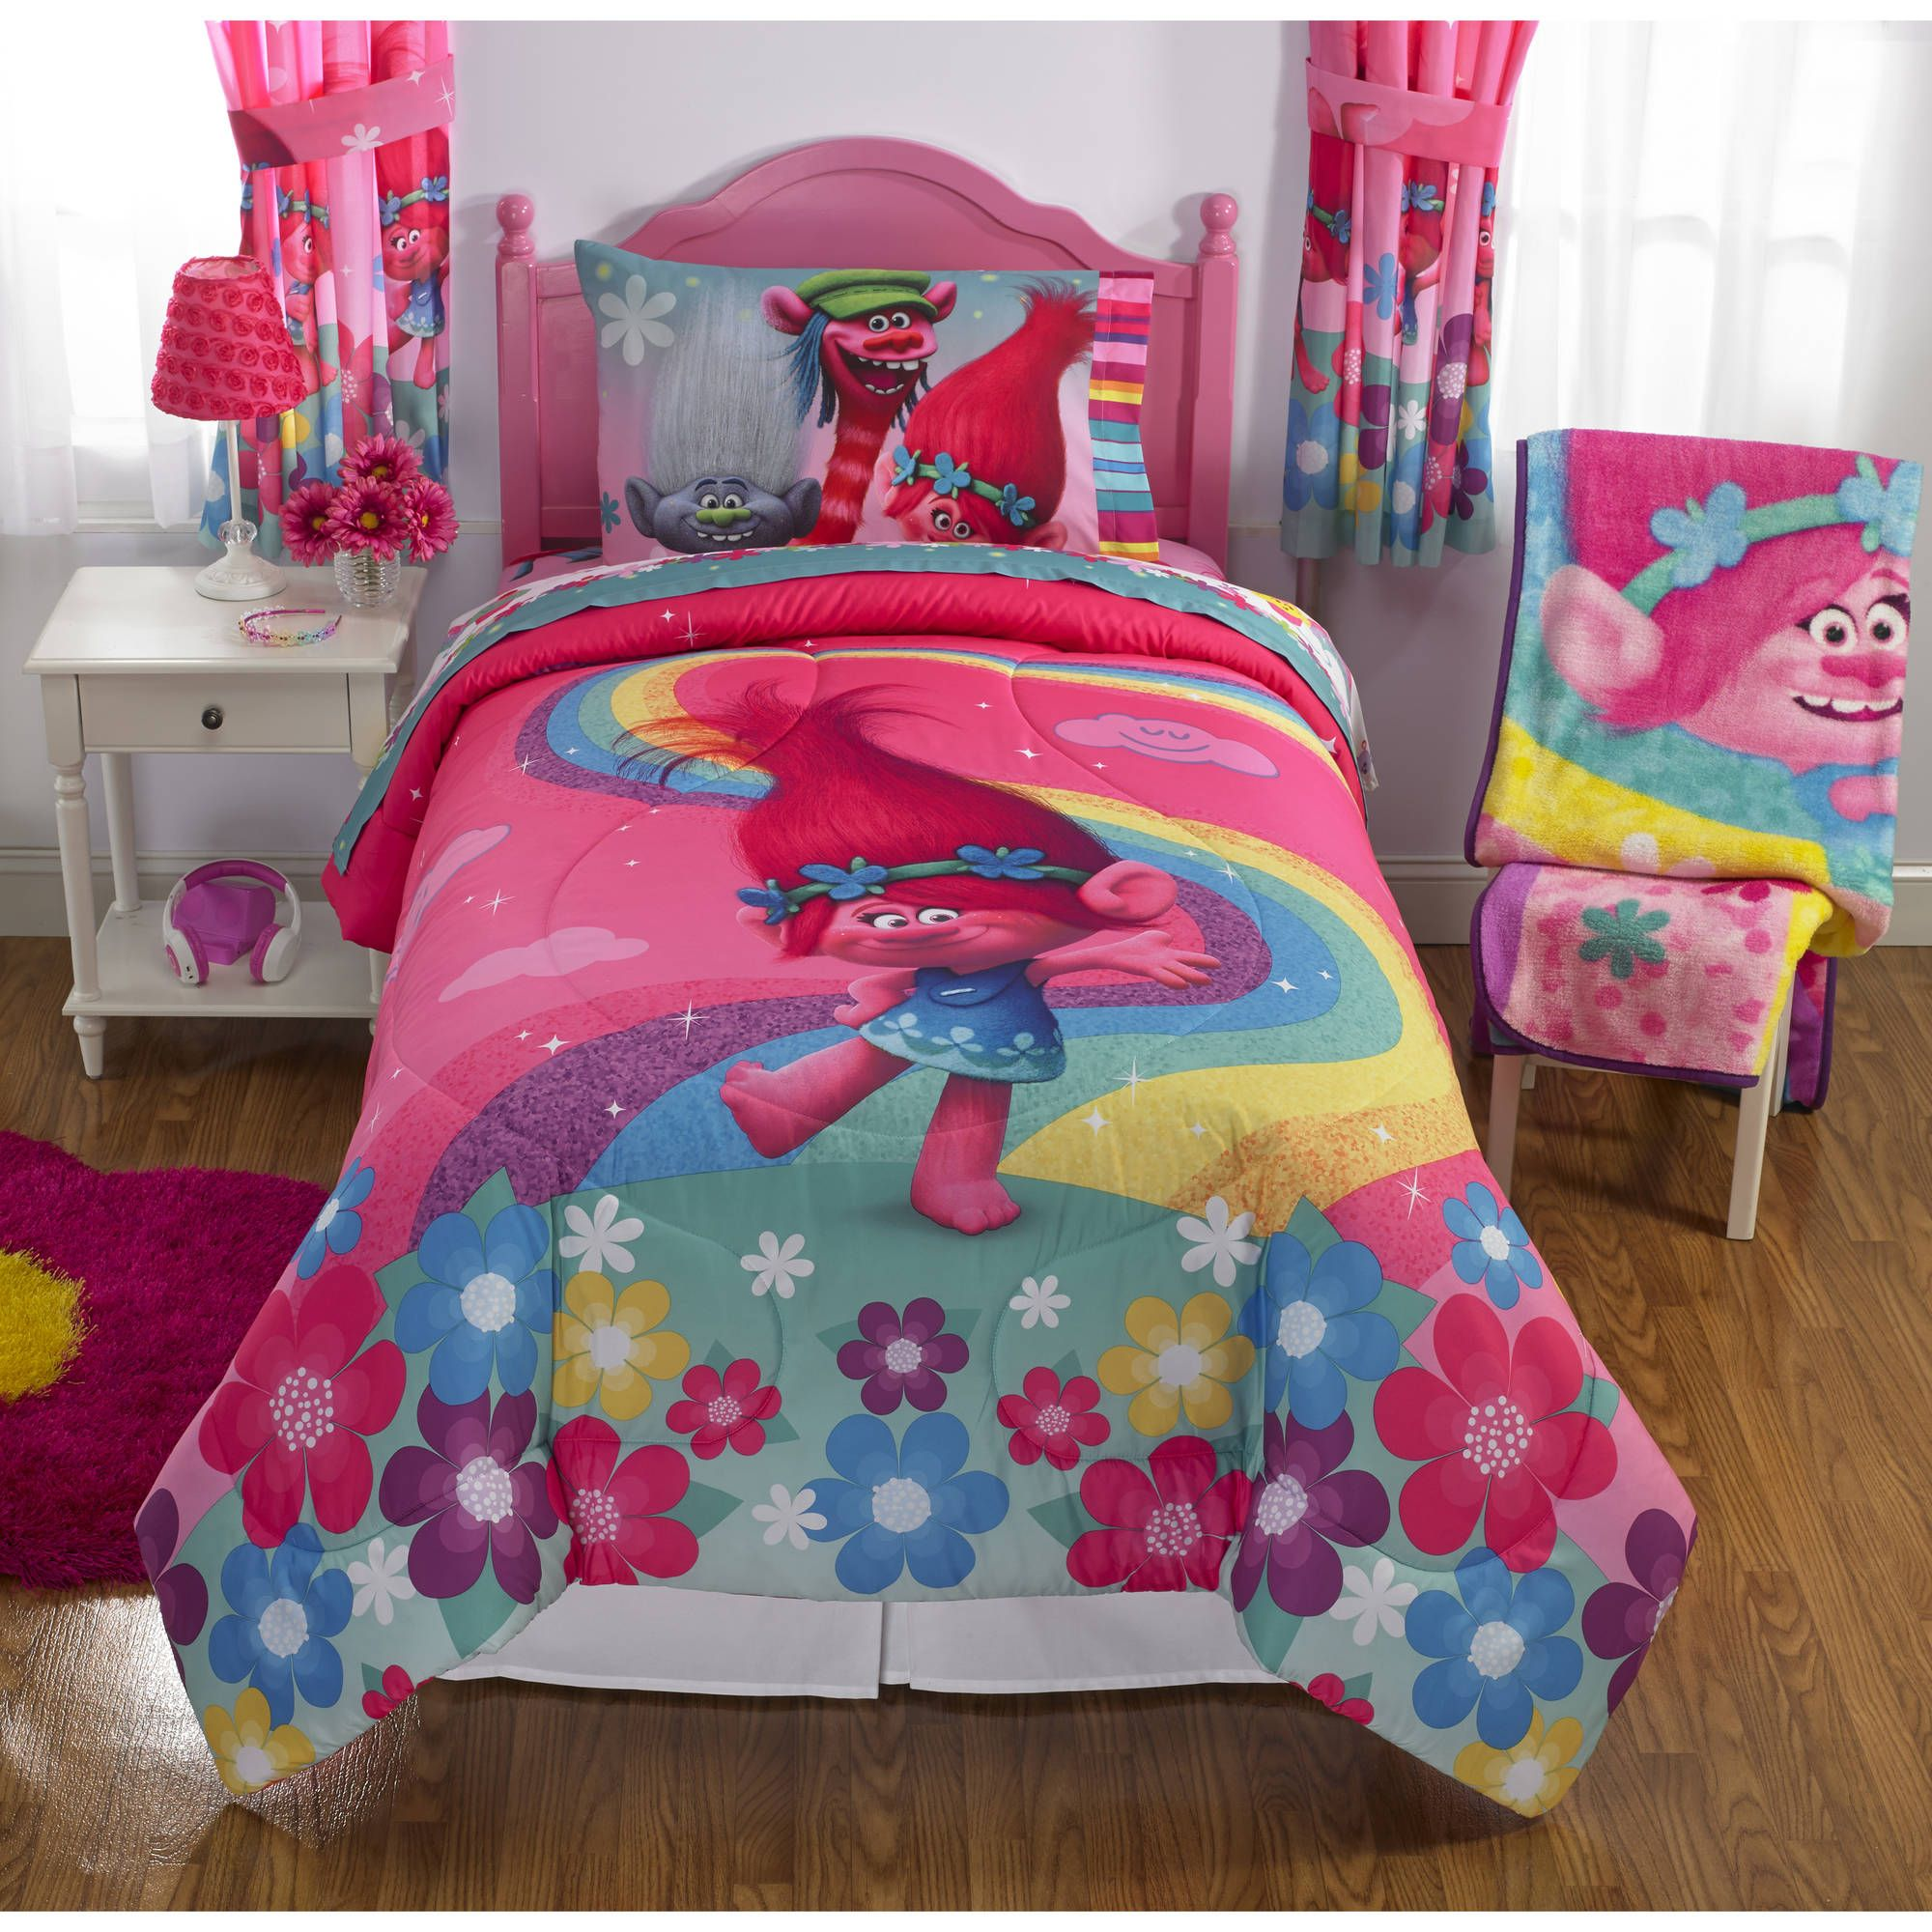 Explore Kids Bedding Sets, Twin Comforter Sets And More